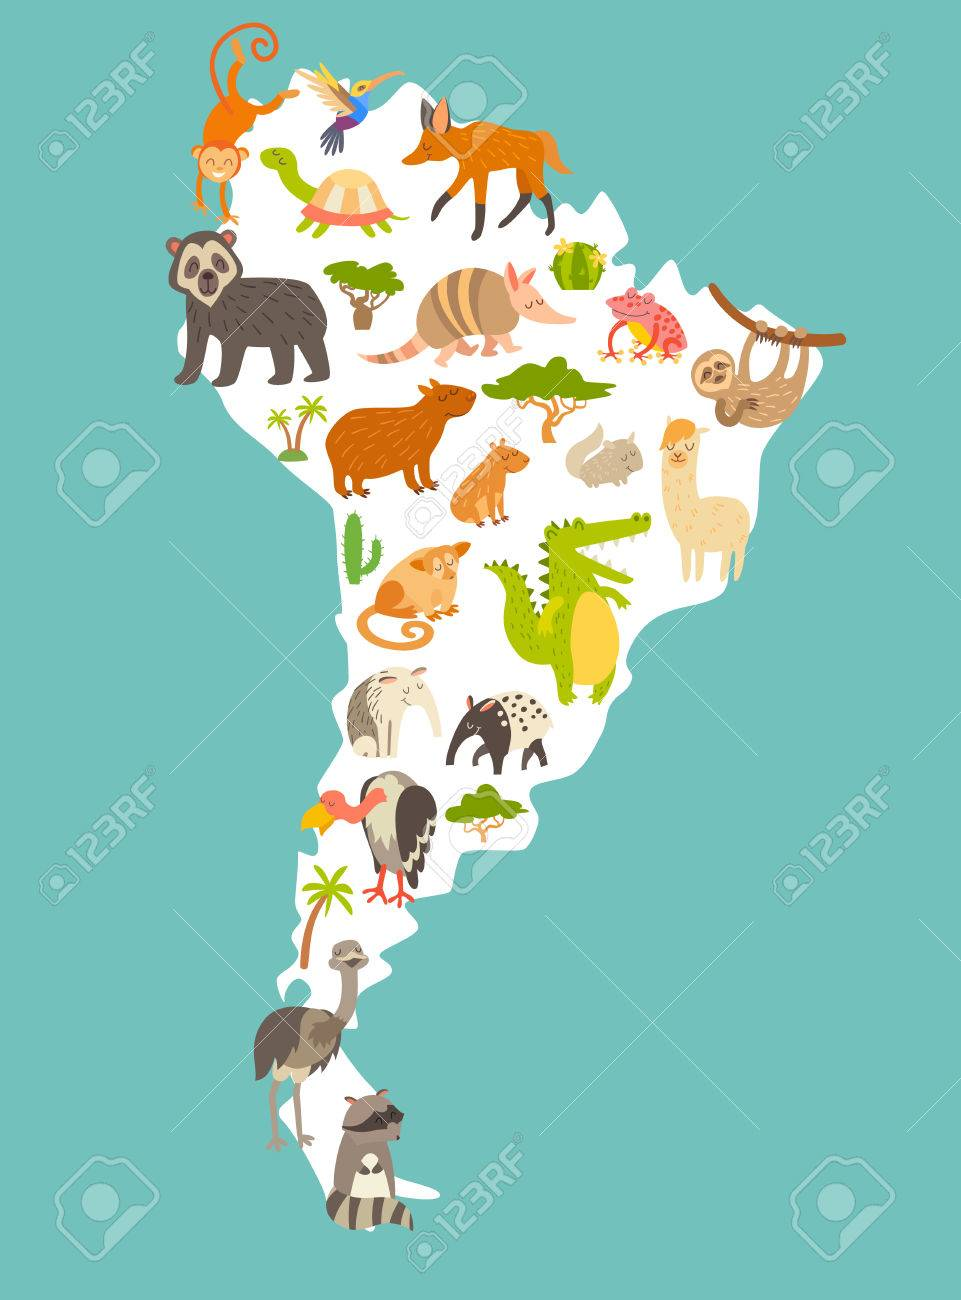 Map Of Sourth America Animals World Map, Sourth America. Colorful Cartoon Vector